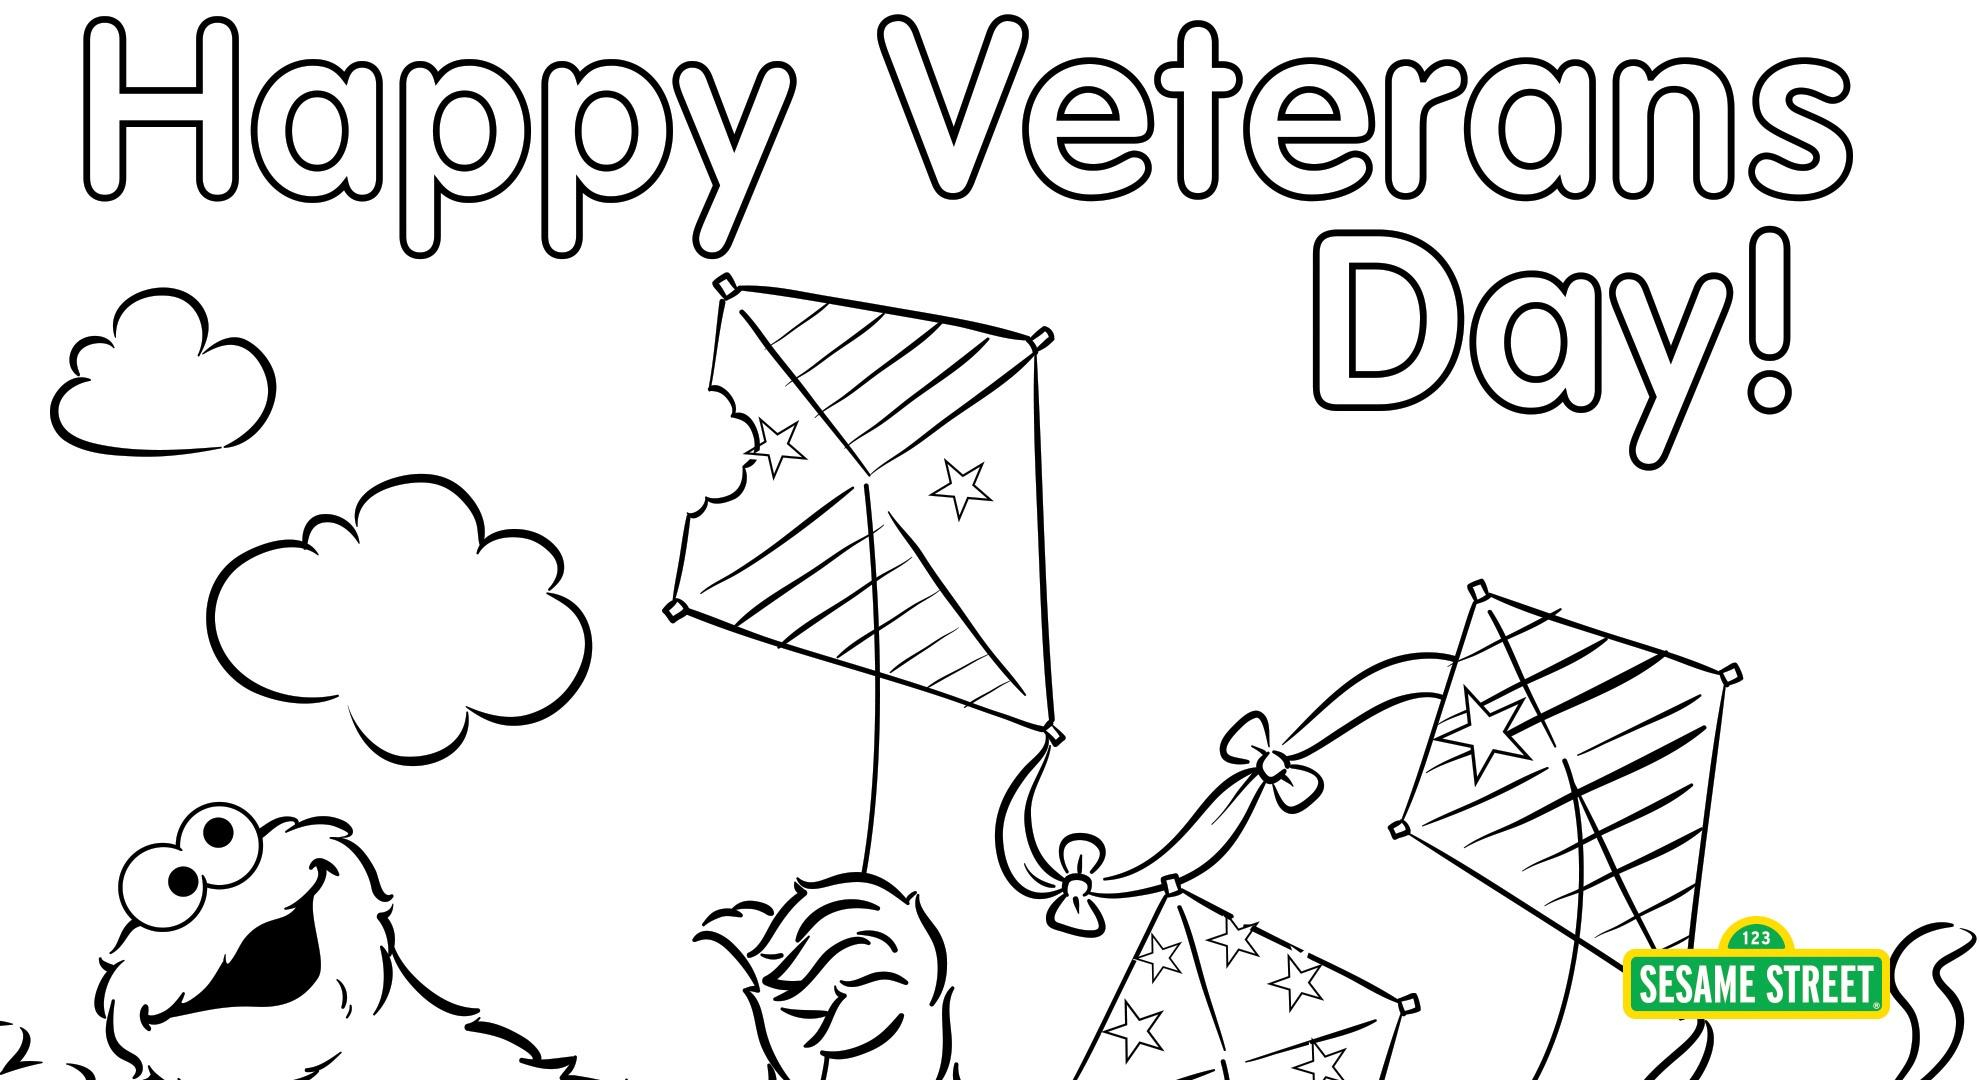 Sesame Street Sign Coloring Page Veterans Day Coloring Page Printable Sesame Street Pbs Learningmedia